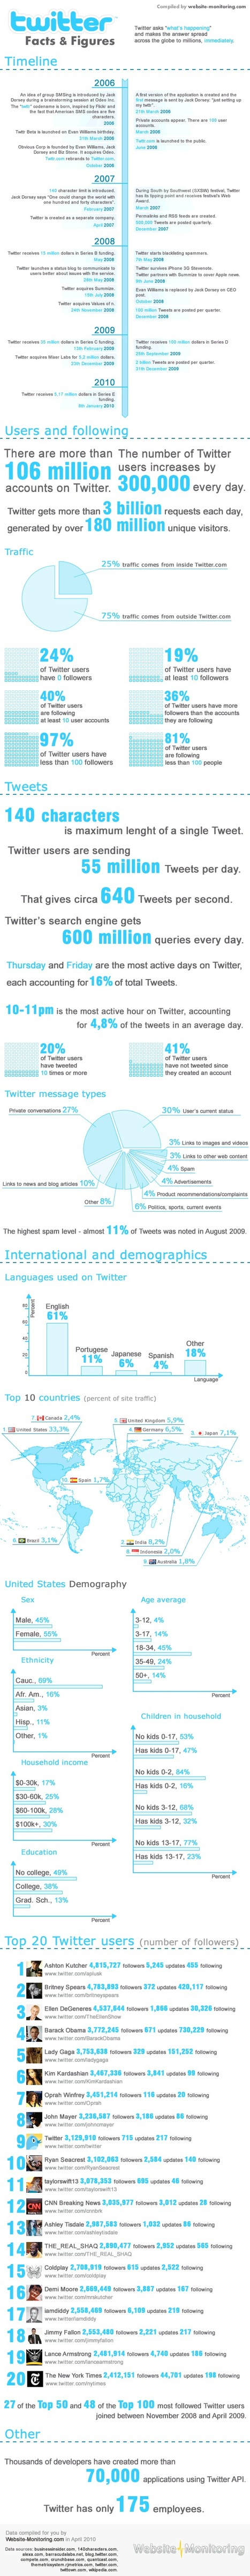 Twitter Facts & Figures [infographic] | Social Media (network, technology, blog, community, virtual reality, etc...) | Scoop.it